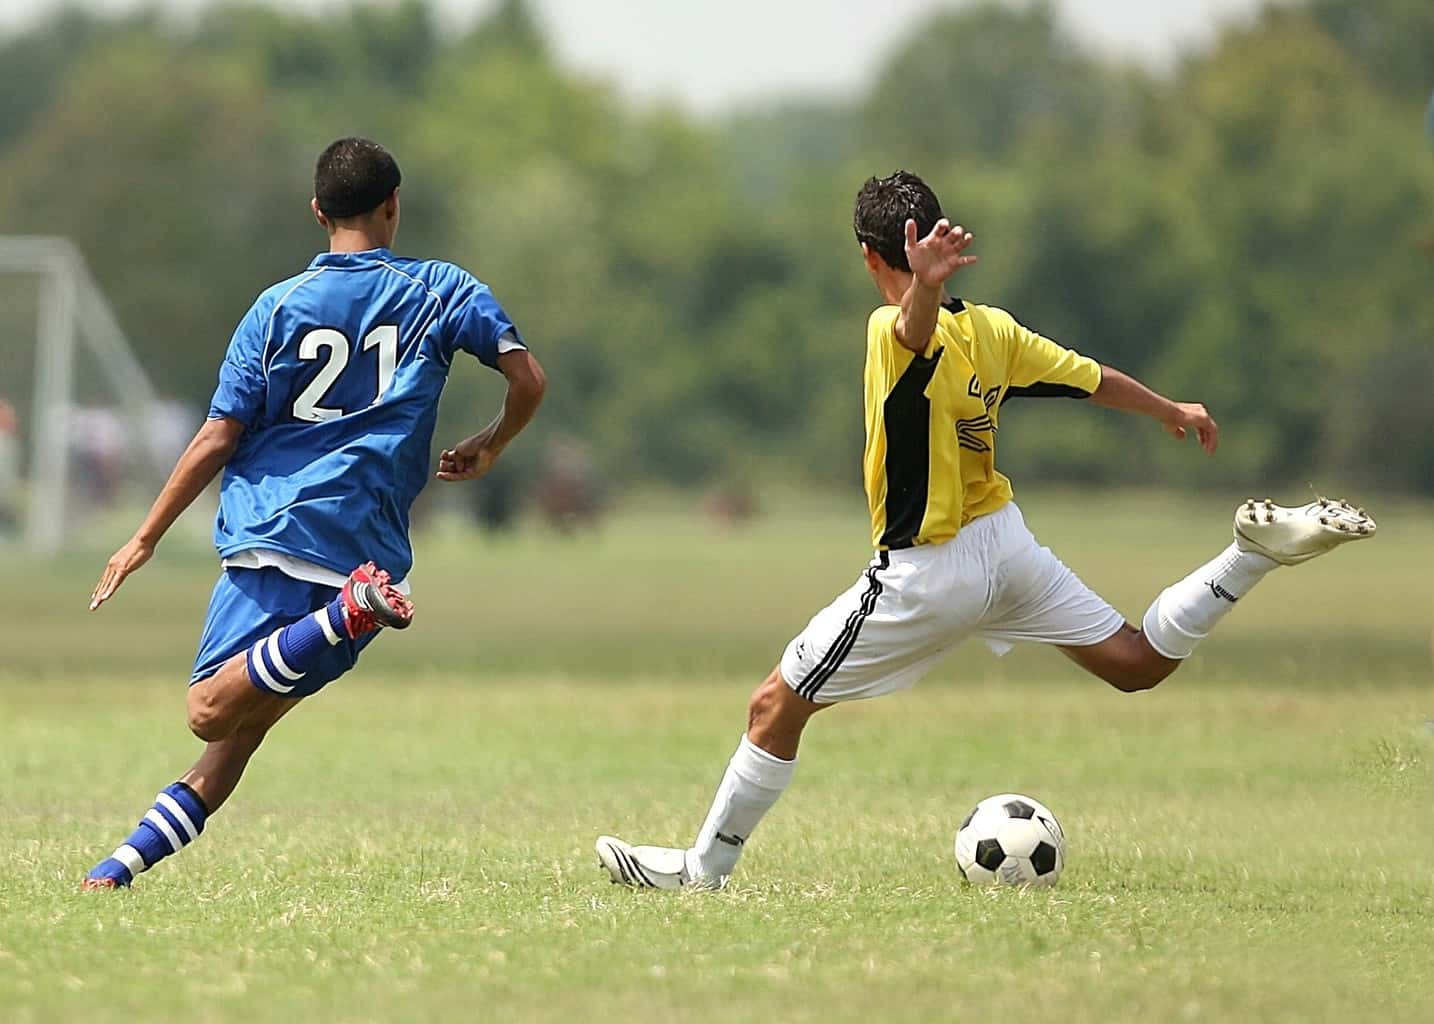 Two players trying to steal the ball from each other during a soccer game